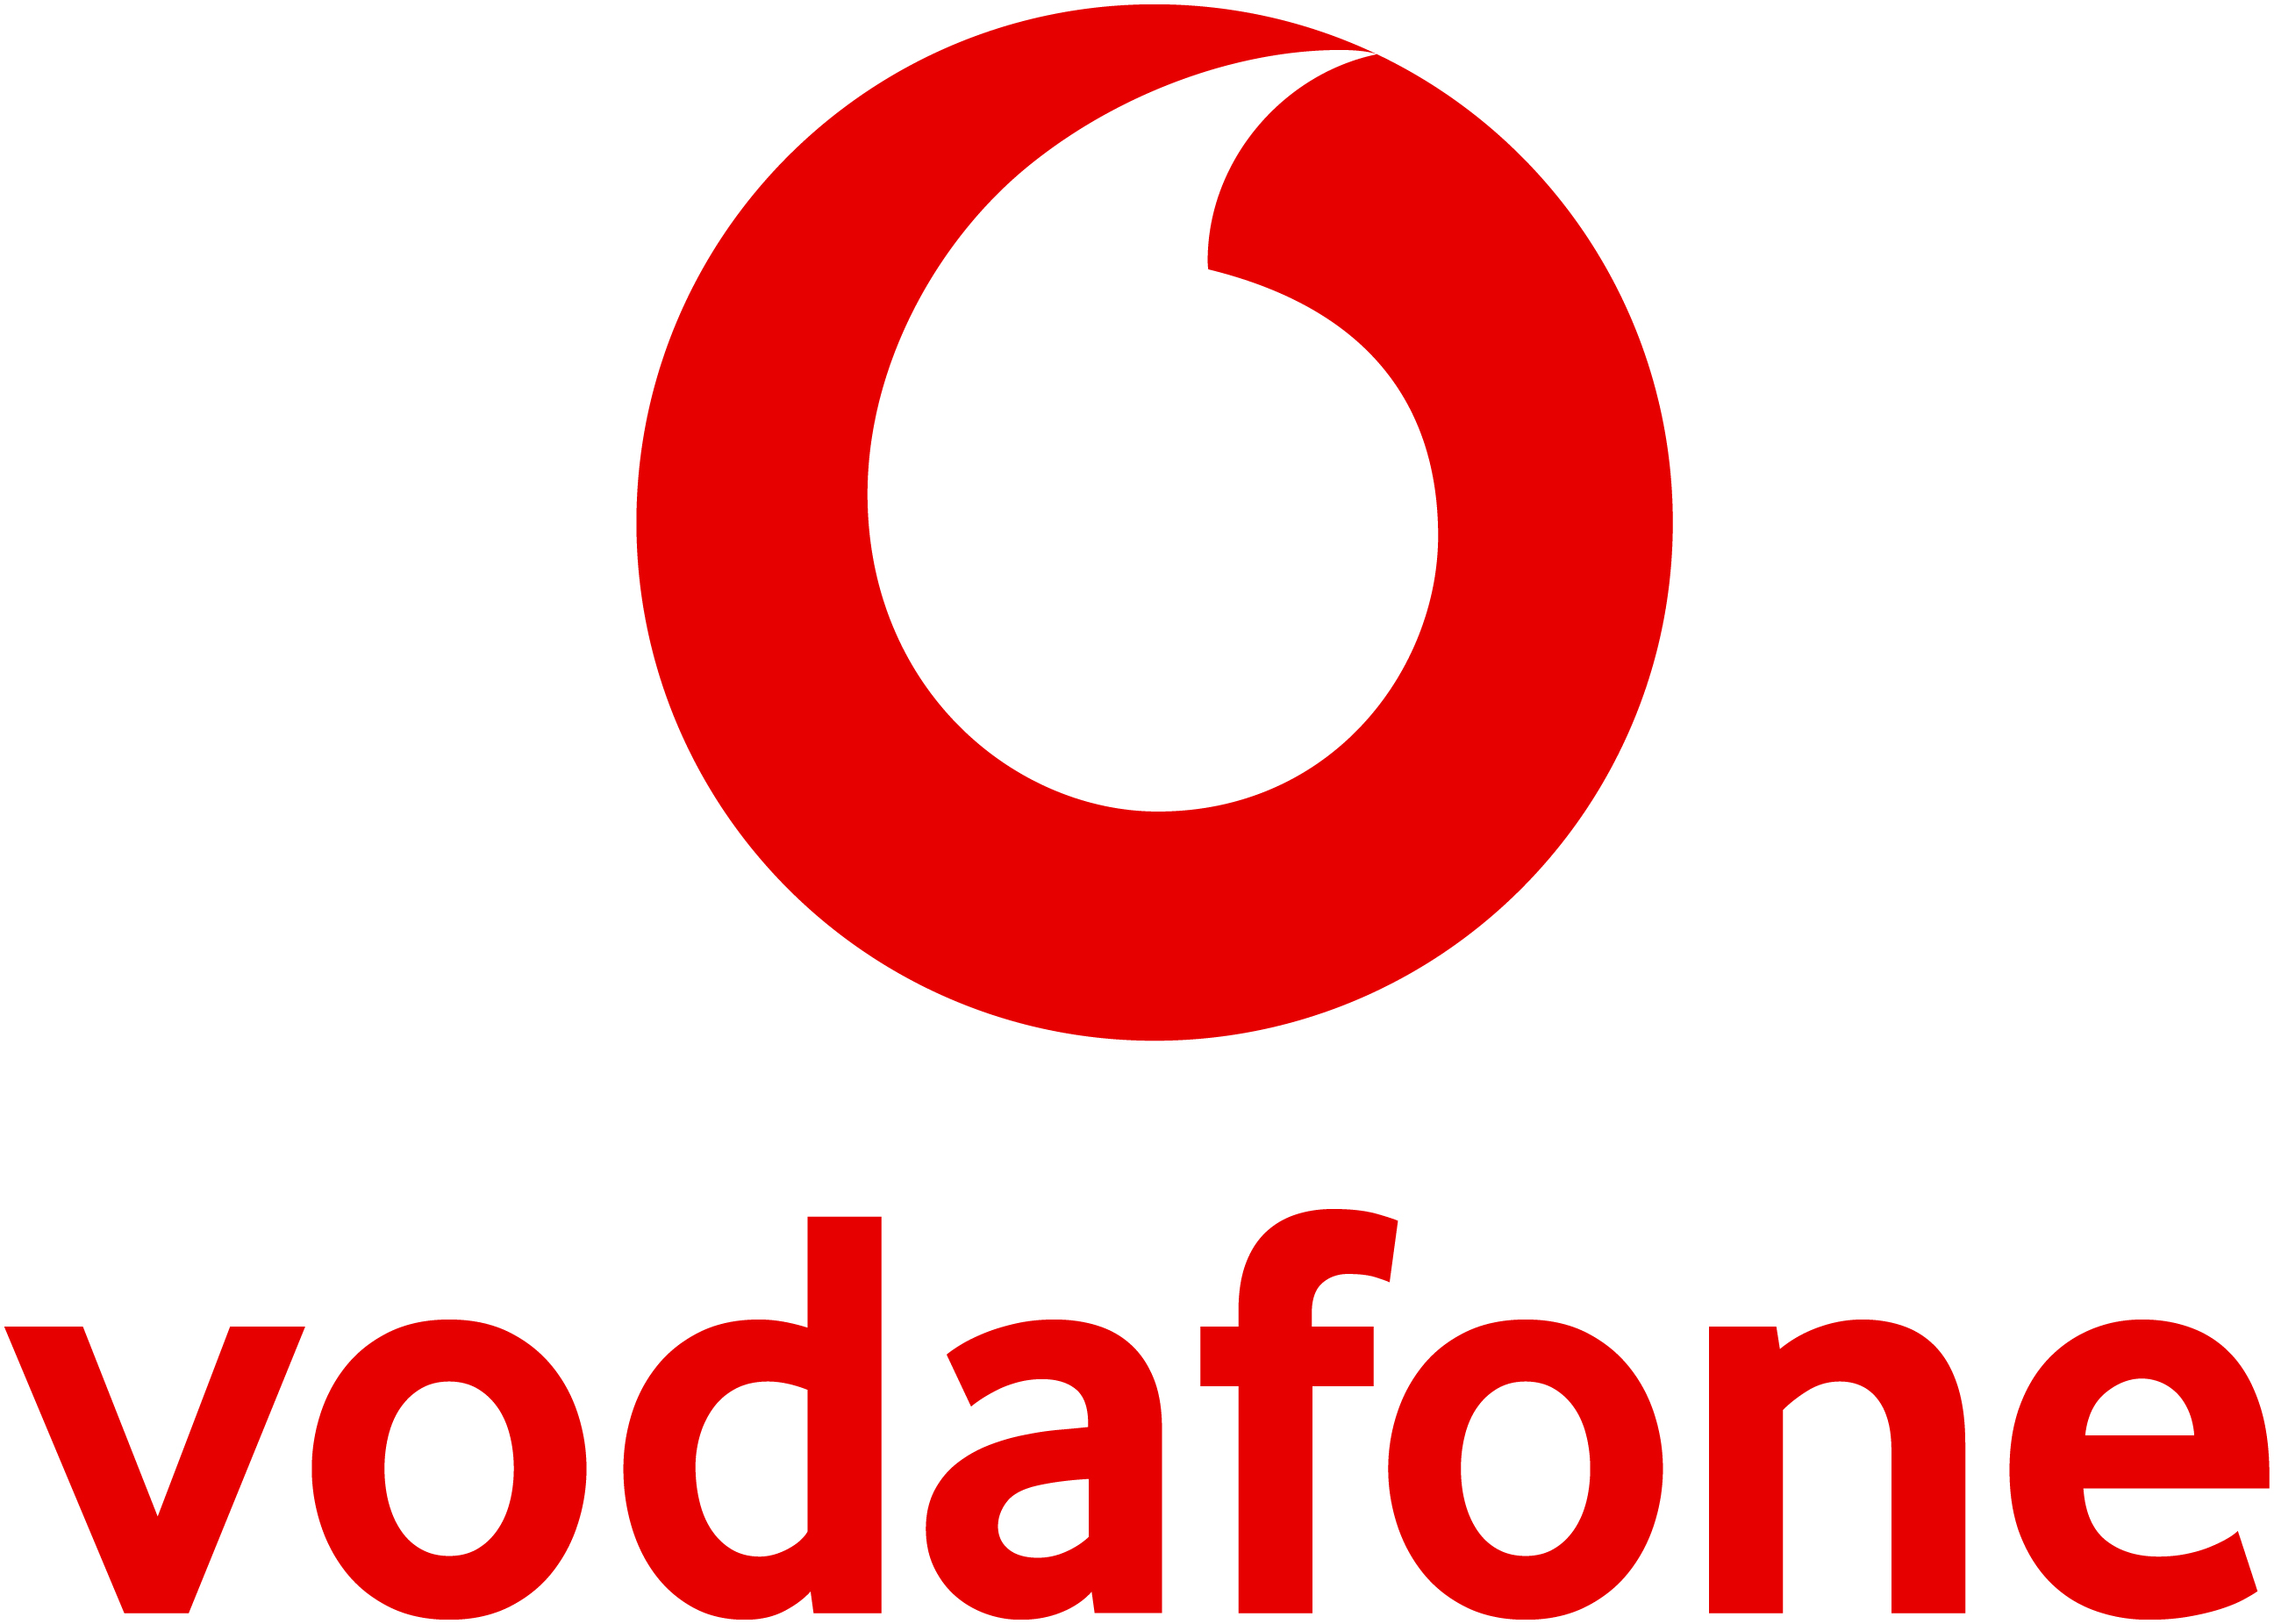 Vodafone UK Logo Image Library.